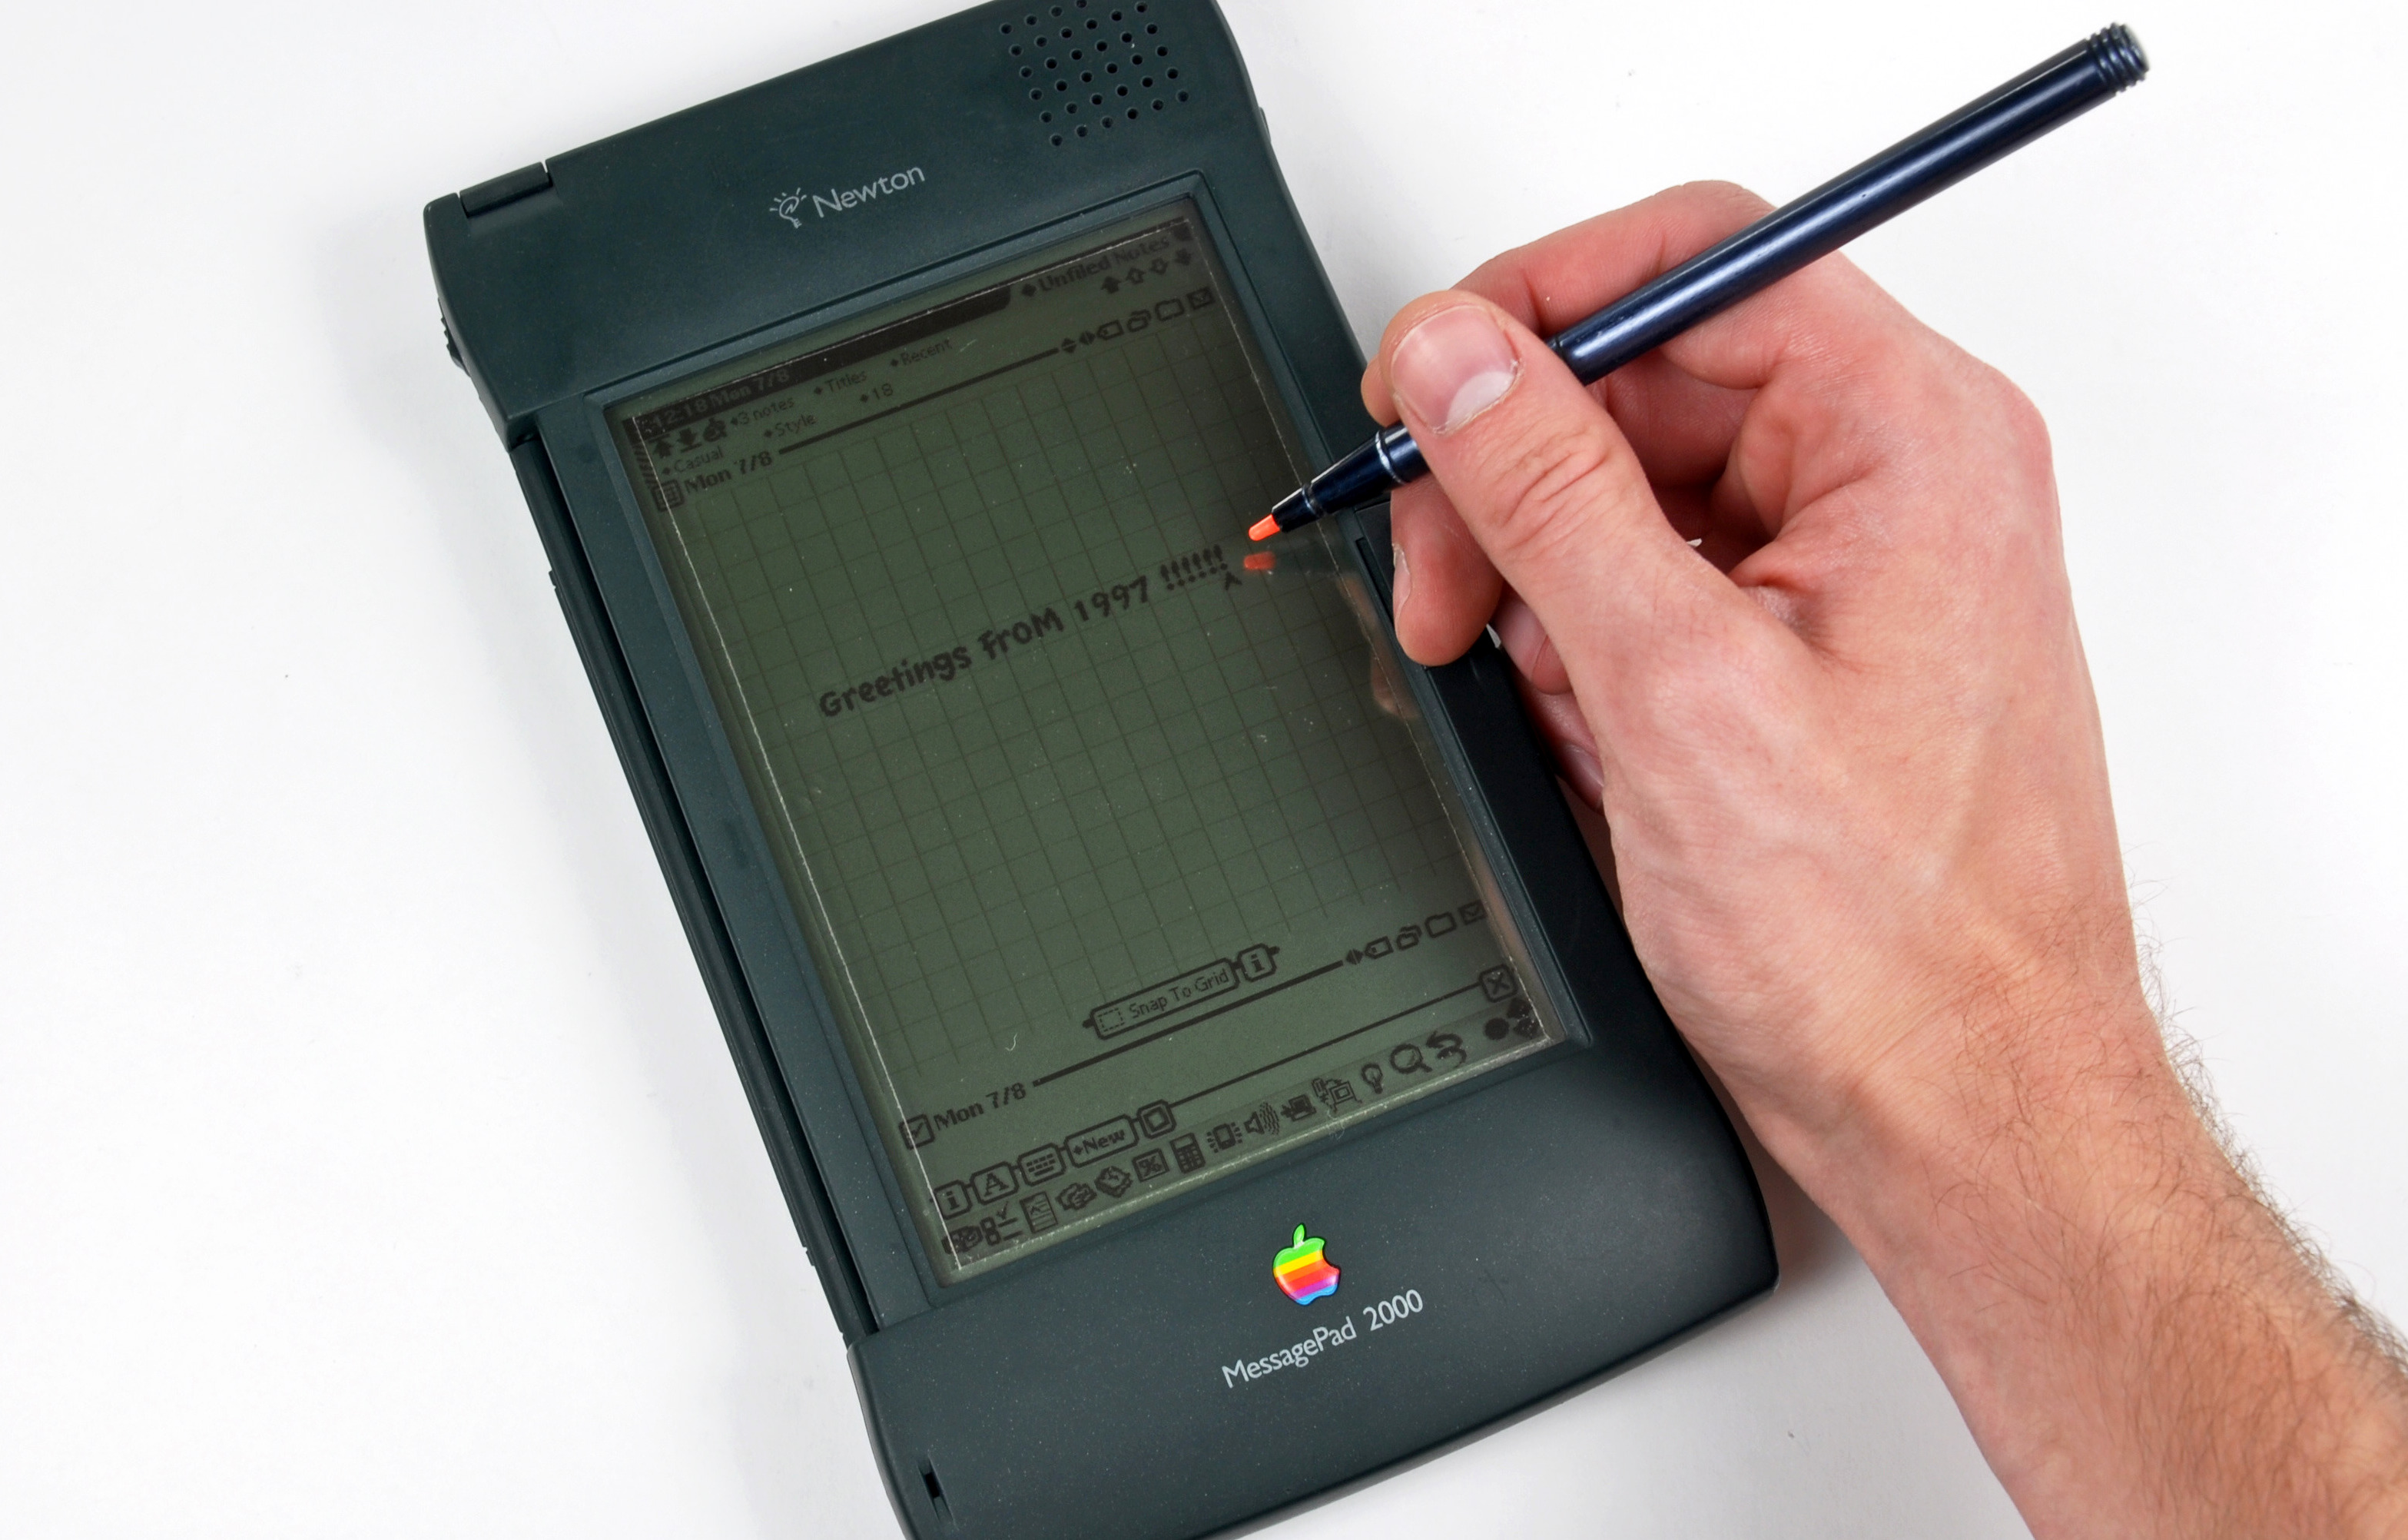 Apple Newton, MessagePad (1998). Photo iFixit.